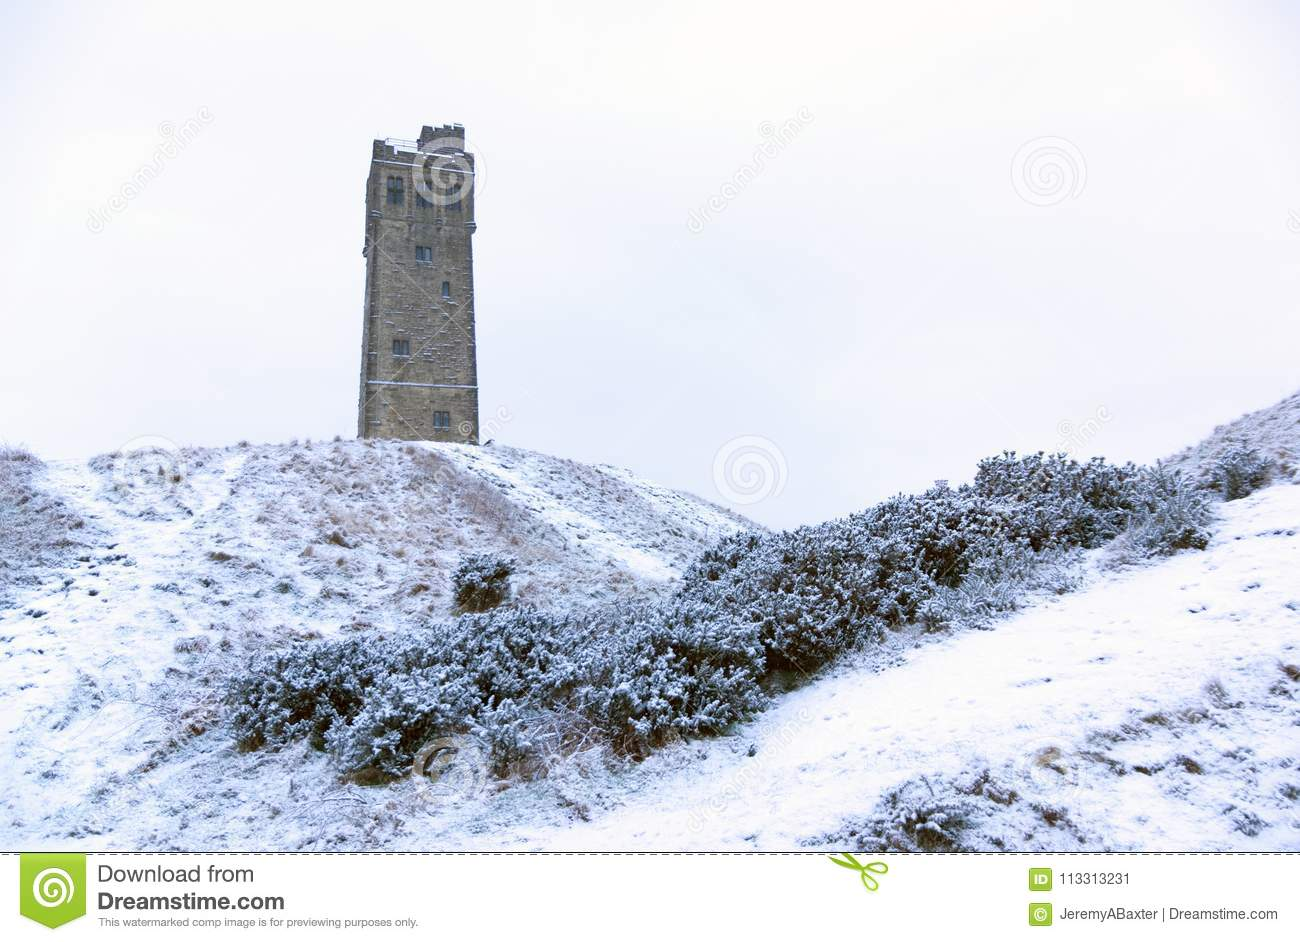 Victora Tower on Castle Hill in Huddersfield, West Yorkshire, England